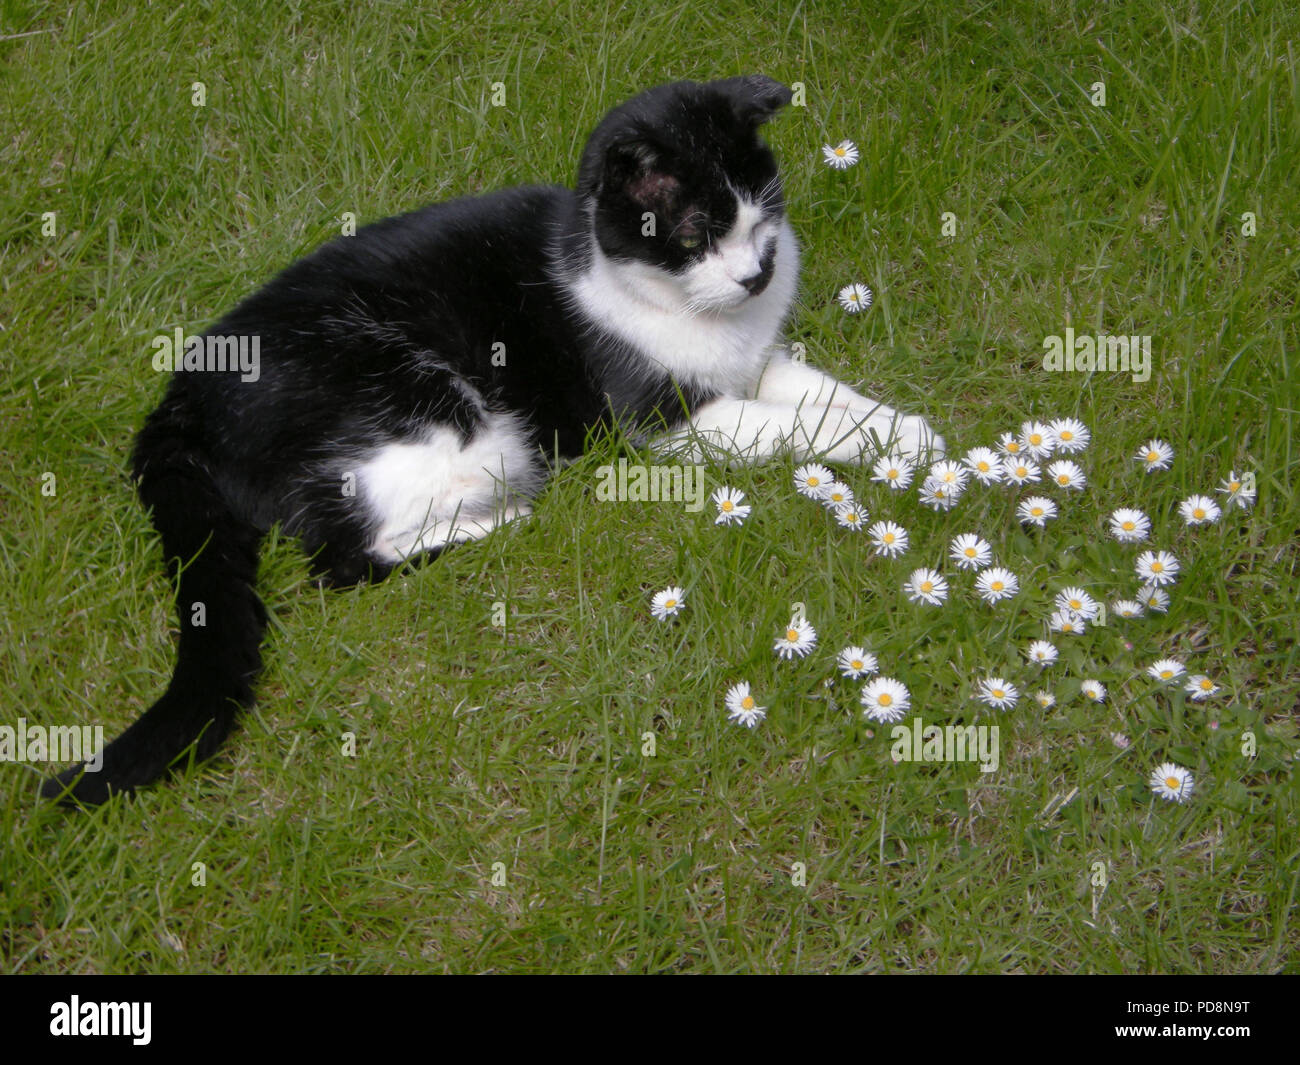 Mature British black and white male cat (Felis silvestris catus) laying on grass amidst daisies (Bellis perennis) in an English country garden Stock Photo